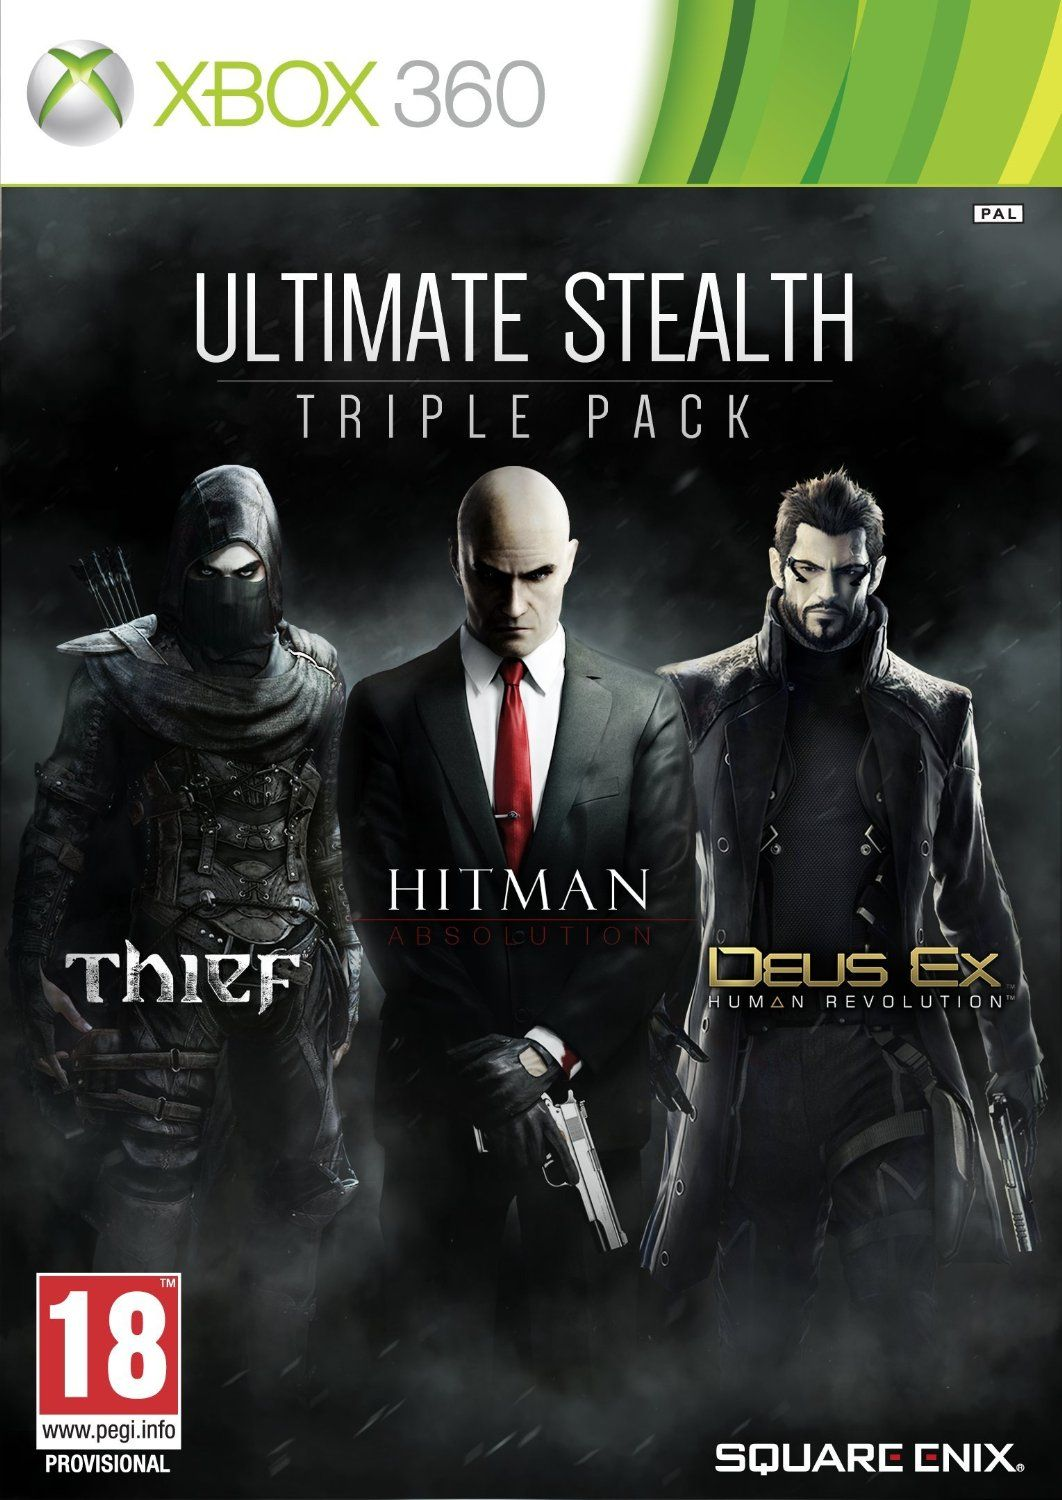 Ultimate Stealth Triple Pack (Hitmam Absolution + Thief + Deus Ex Human Revolution)